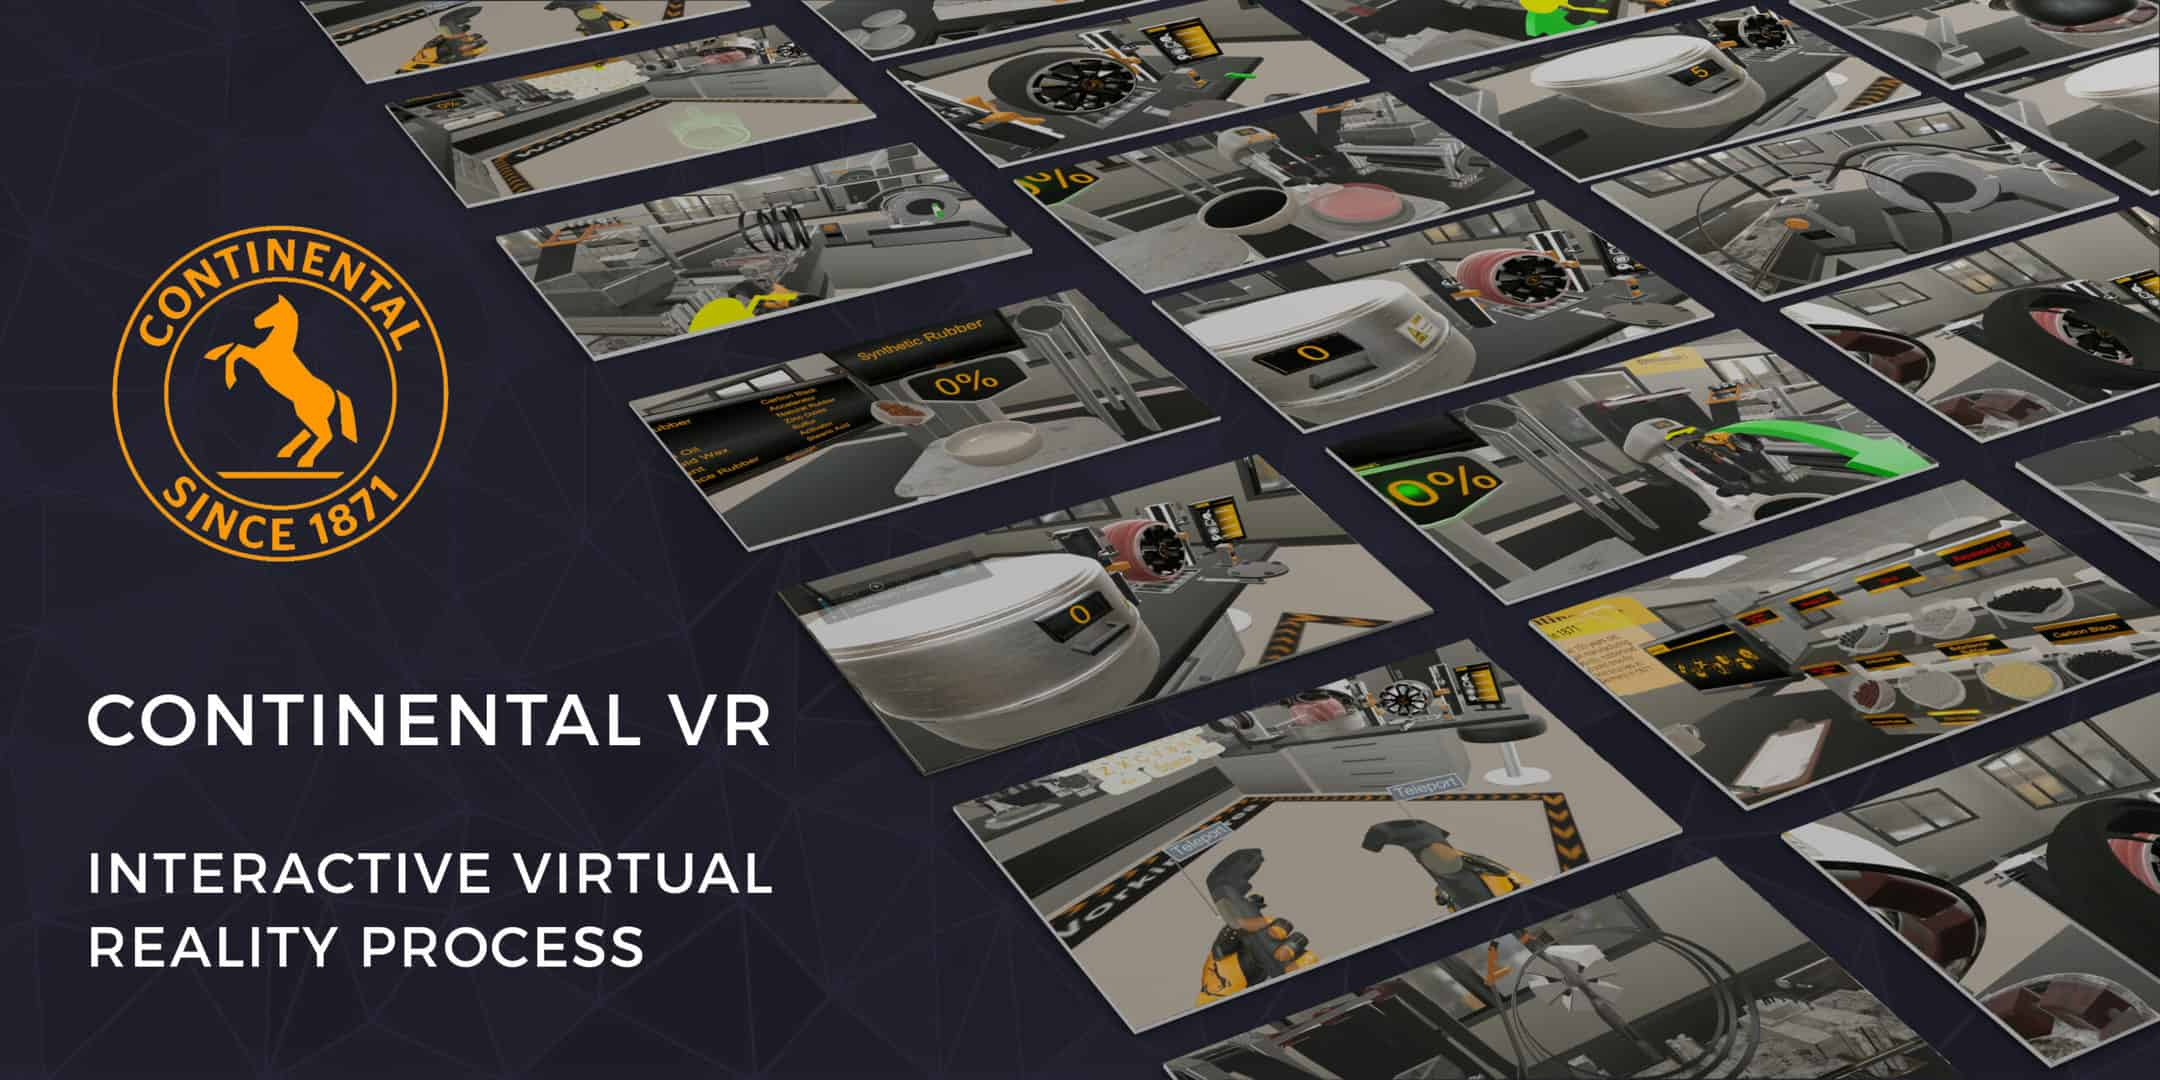 Read more about the article CONTINENTAL VR<br> Continental used an interactive virtual reality experience to gamify their tyre making process and allow people from around the country to make their own personalised tyre model.